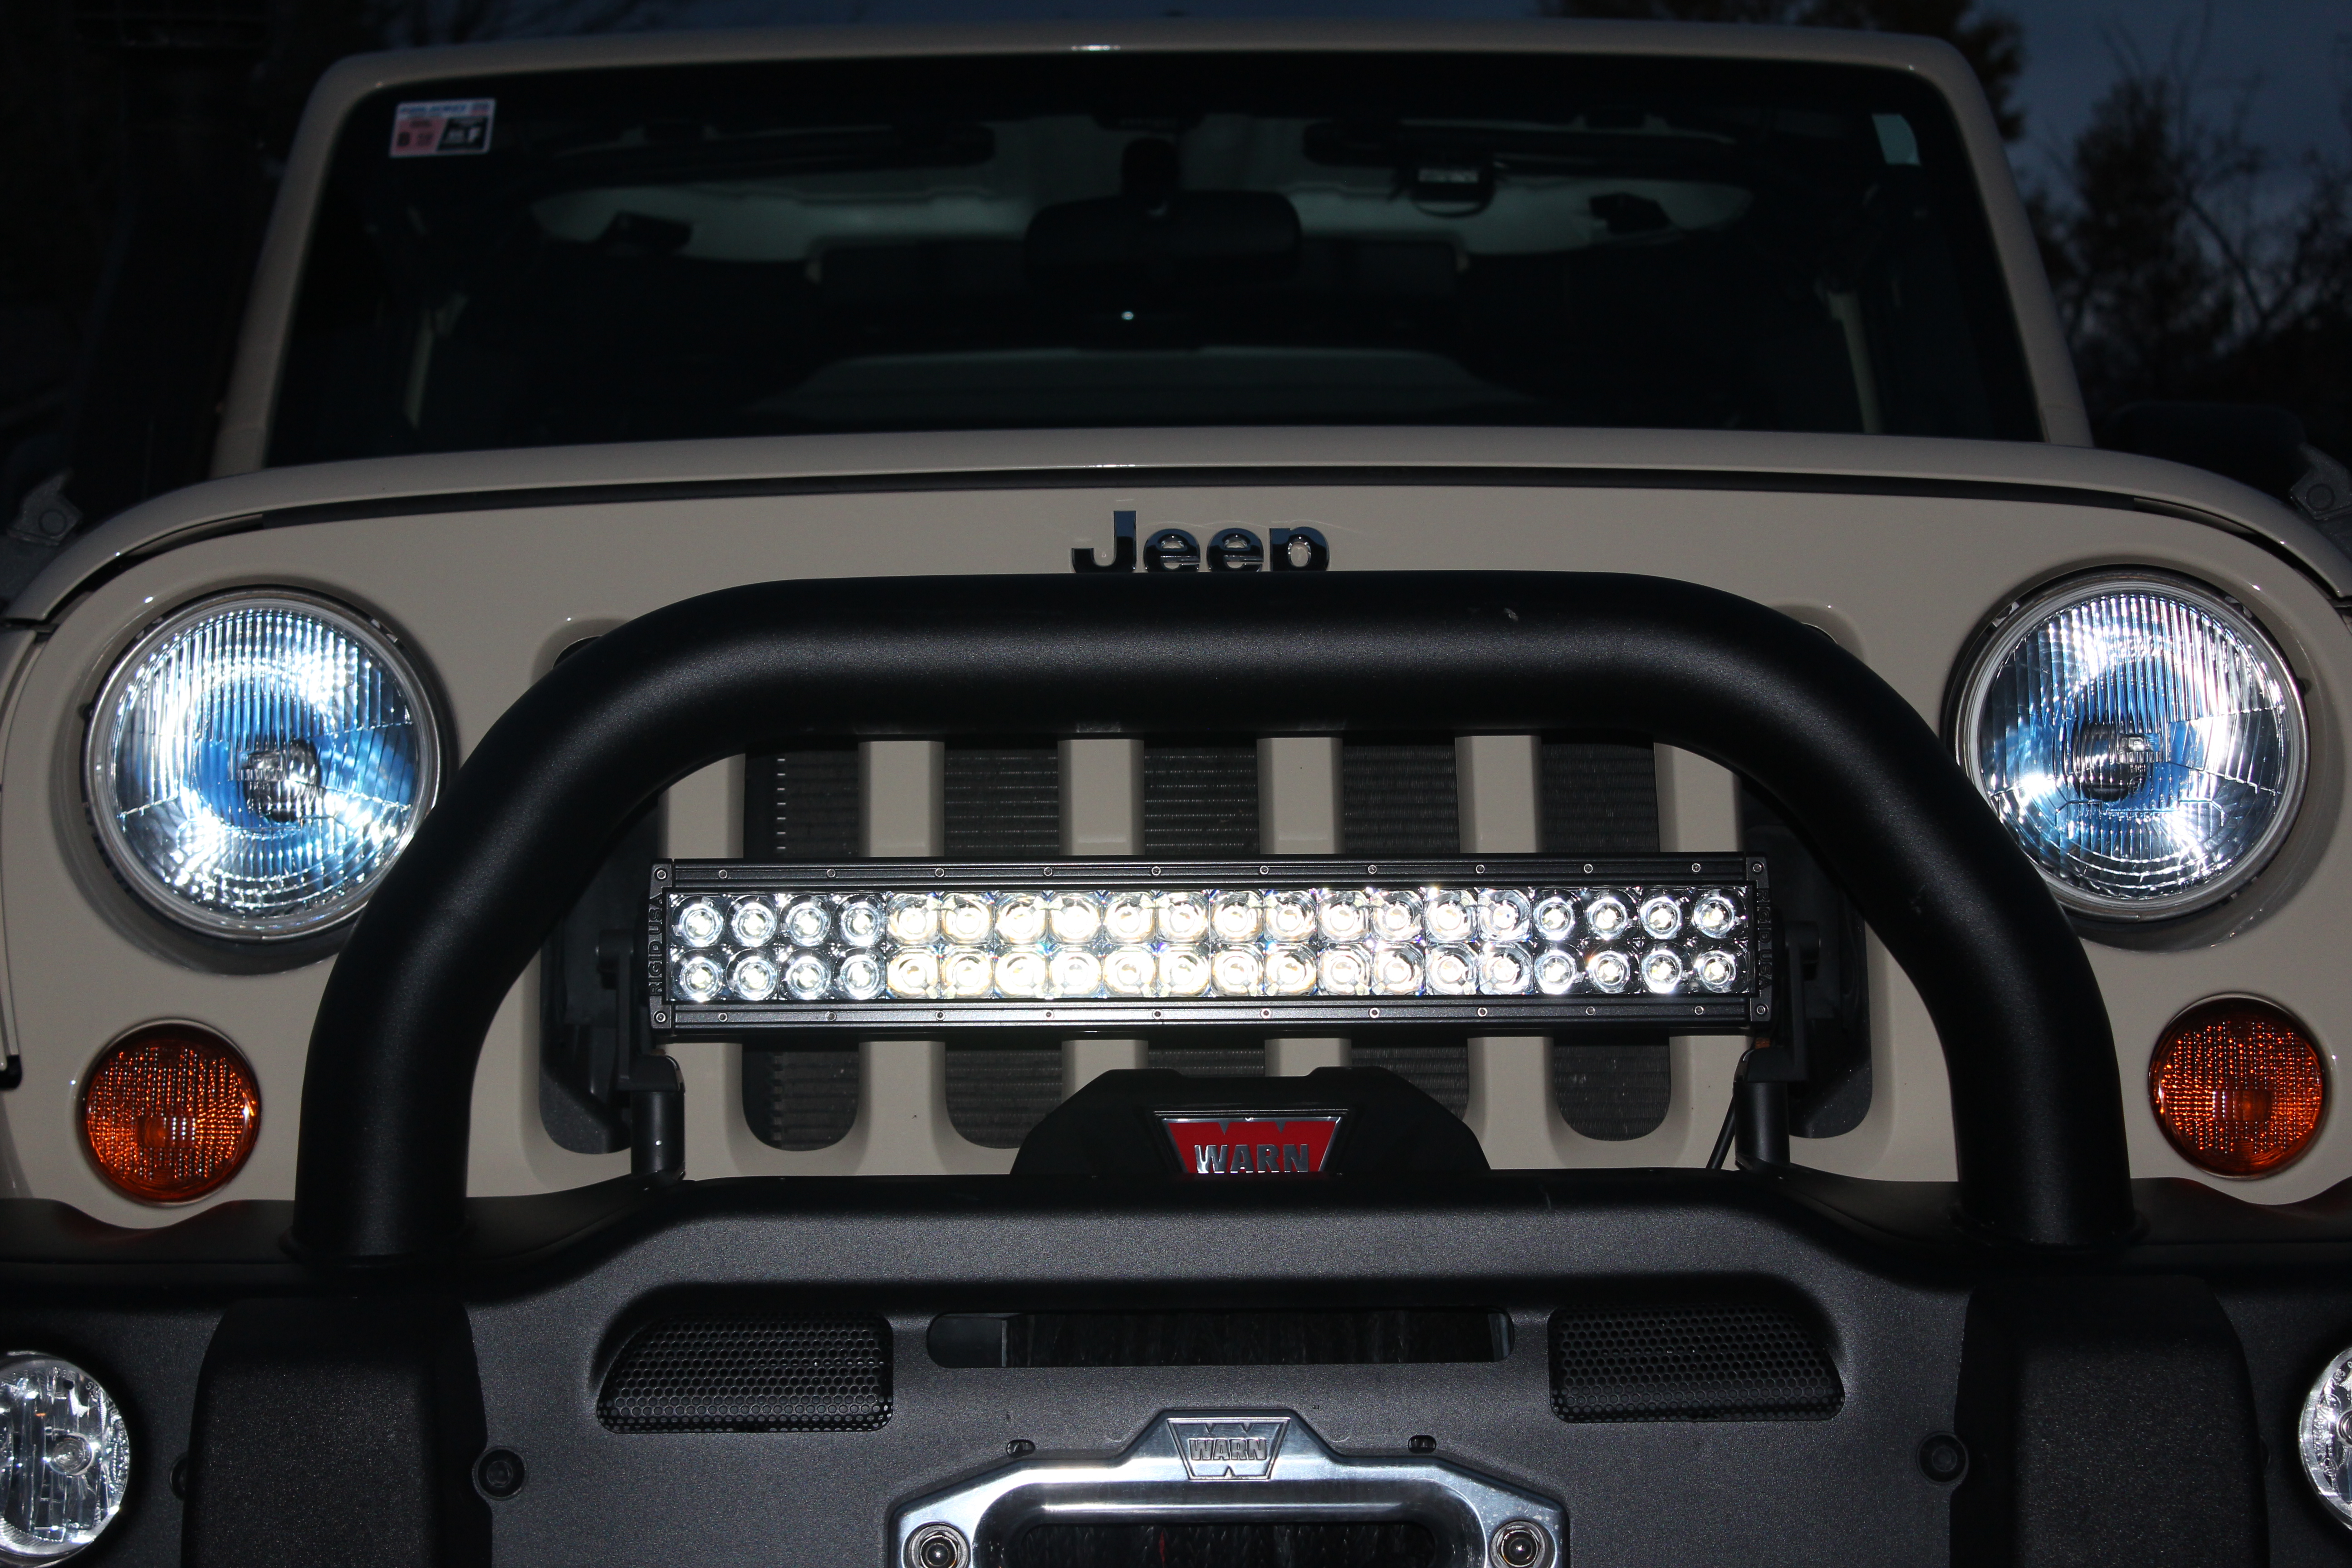 Aev premium front bumper review revolution expedition but aev front w warn winch and ri 20 light bar aloadofball Image collections